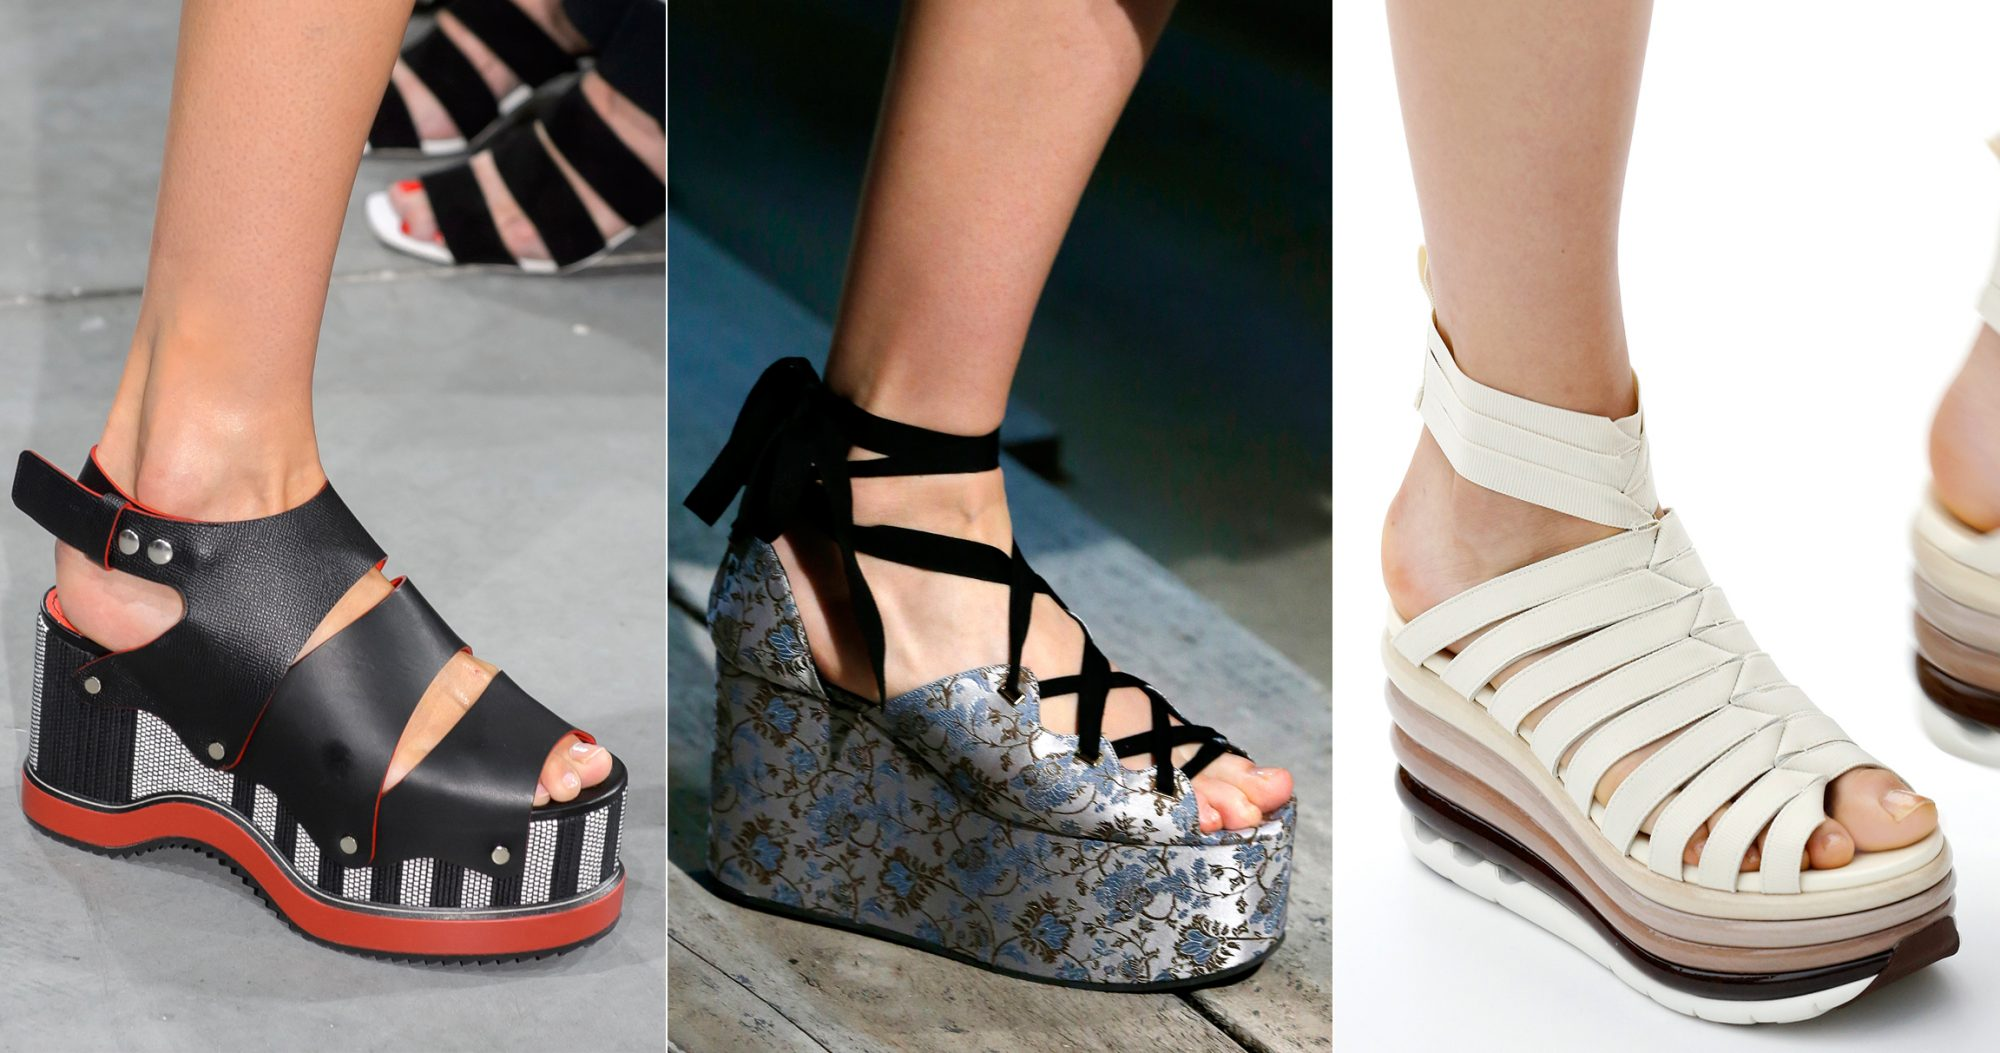 These Throwback Shoes Are the New Go-To Flats of 2017